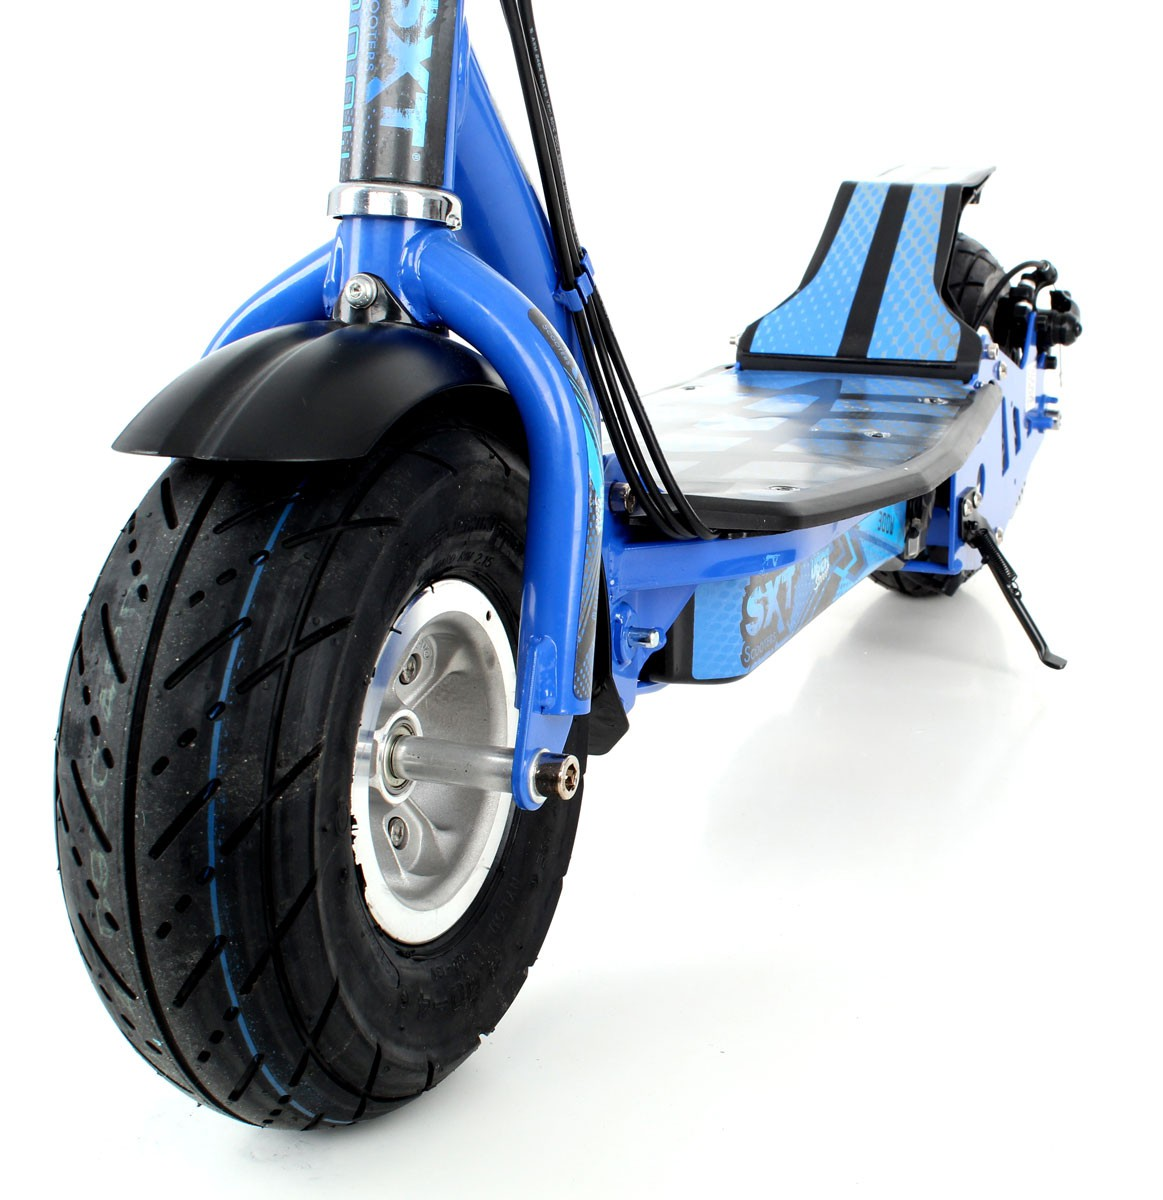 sxt scooter sxt300 elektroroller 300w 20 km h blau fun. Black Bedroom Furniture Sets. Home Design Ideas